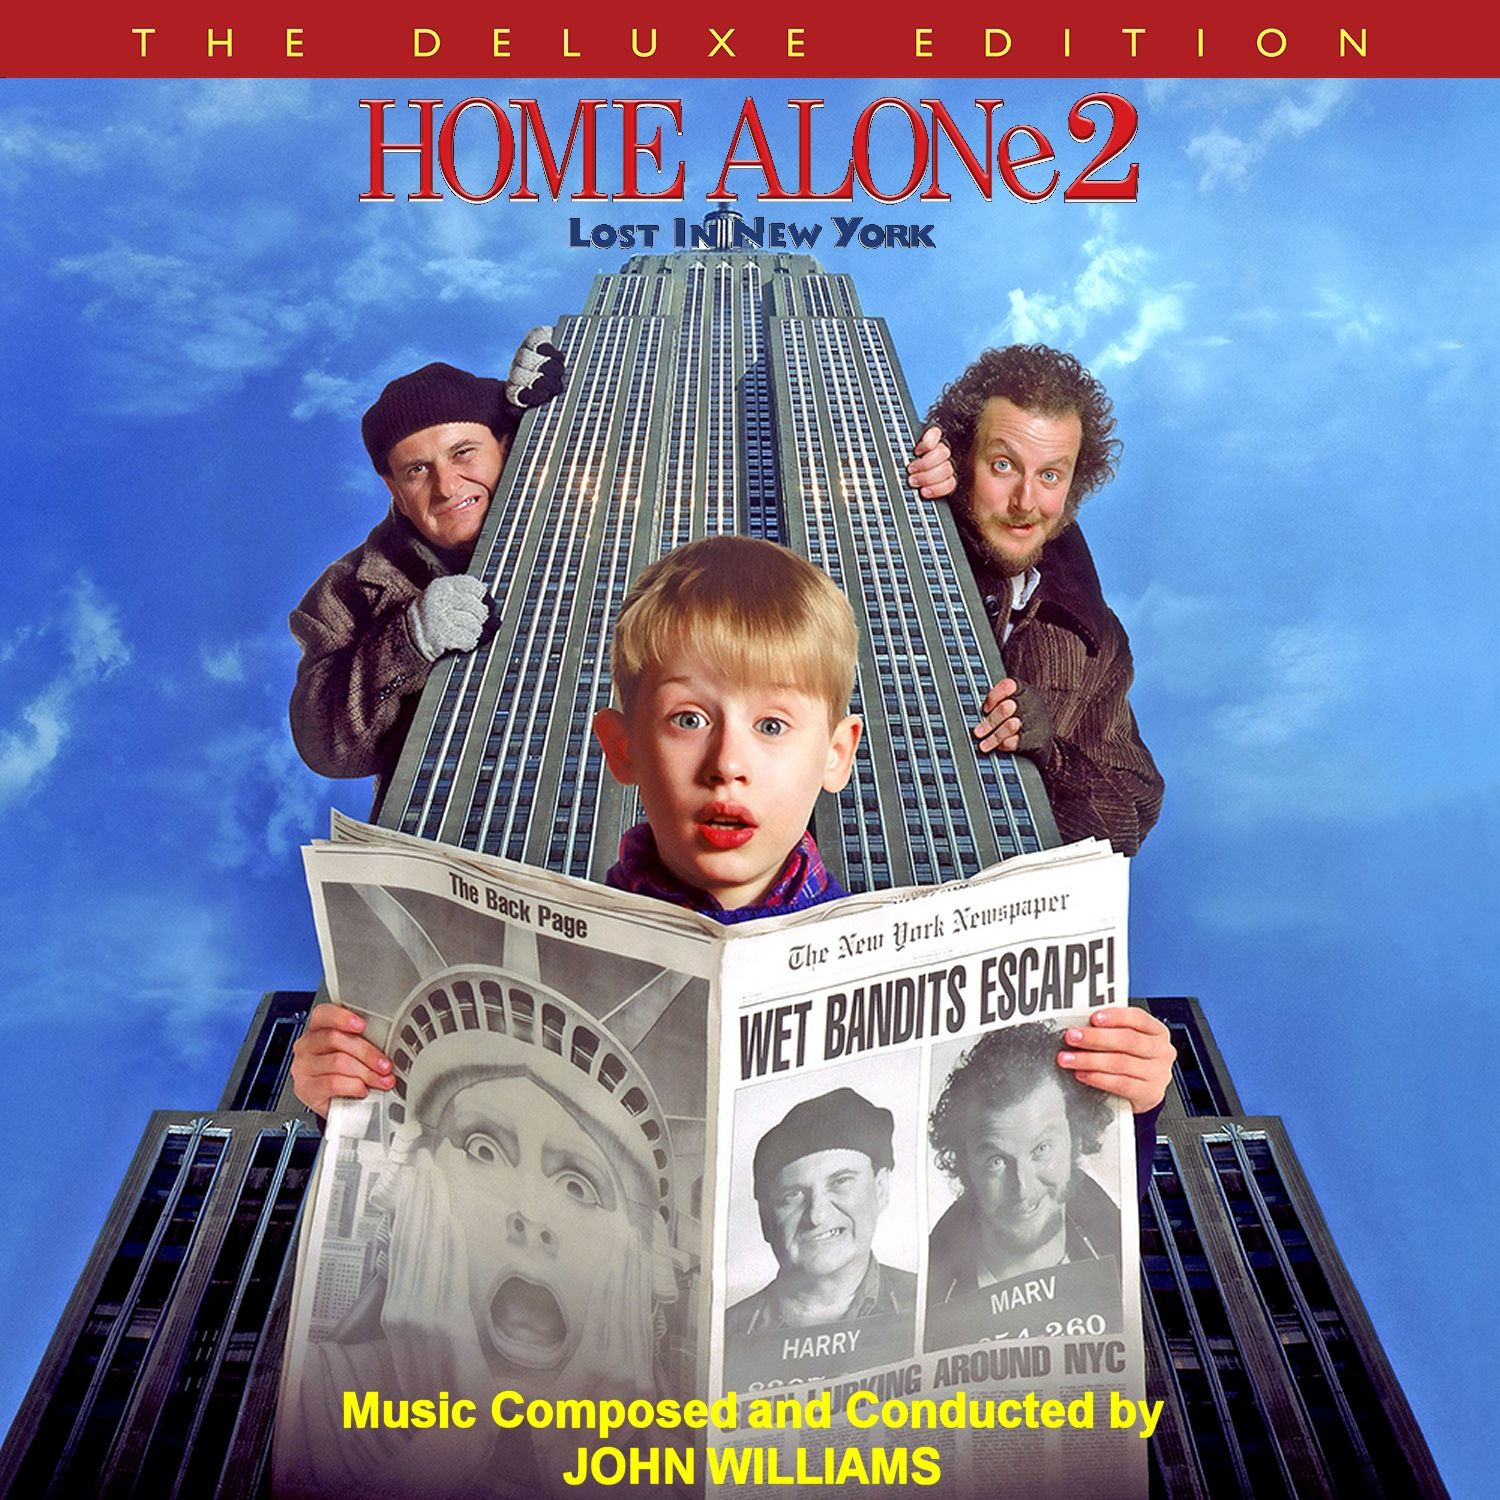 Home Alone 2 Lost In New York Custom Soundtrack And Score Cd Covers In 2019 Home Alone